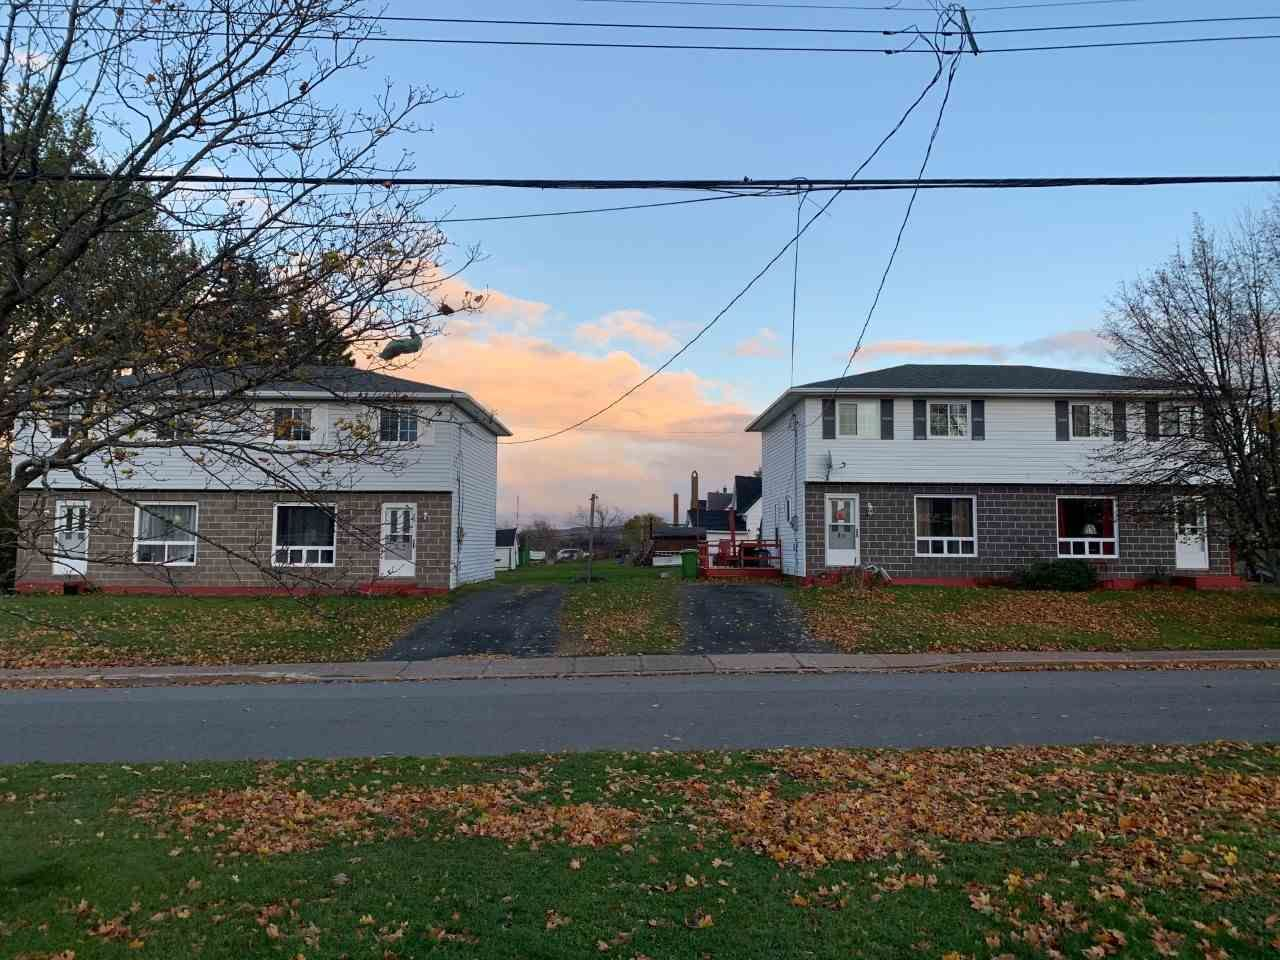 Main Photo: 45-47 Poplar Street in Stellarton: 106-New Glasgow, Stellarton Multi-Family for sale (Northern Region)  : MLS®# 202022869